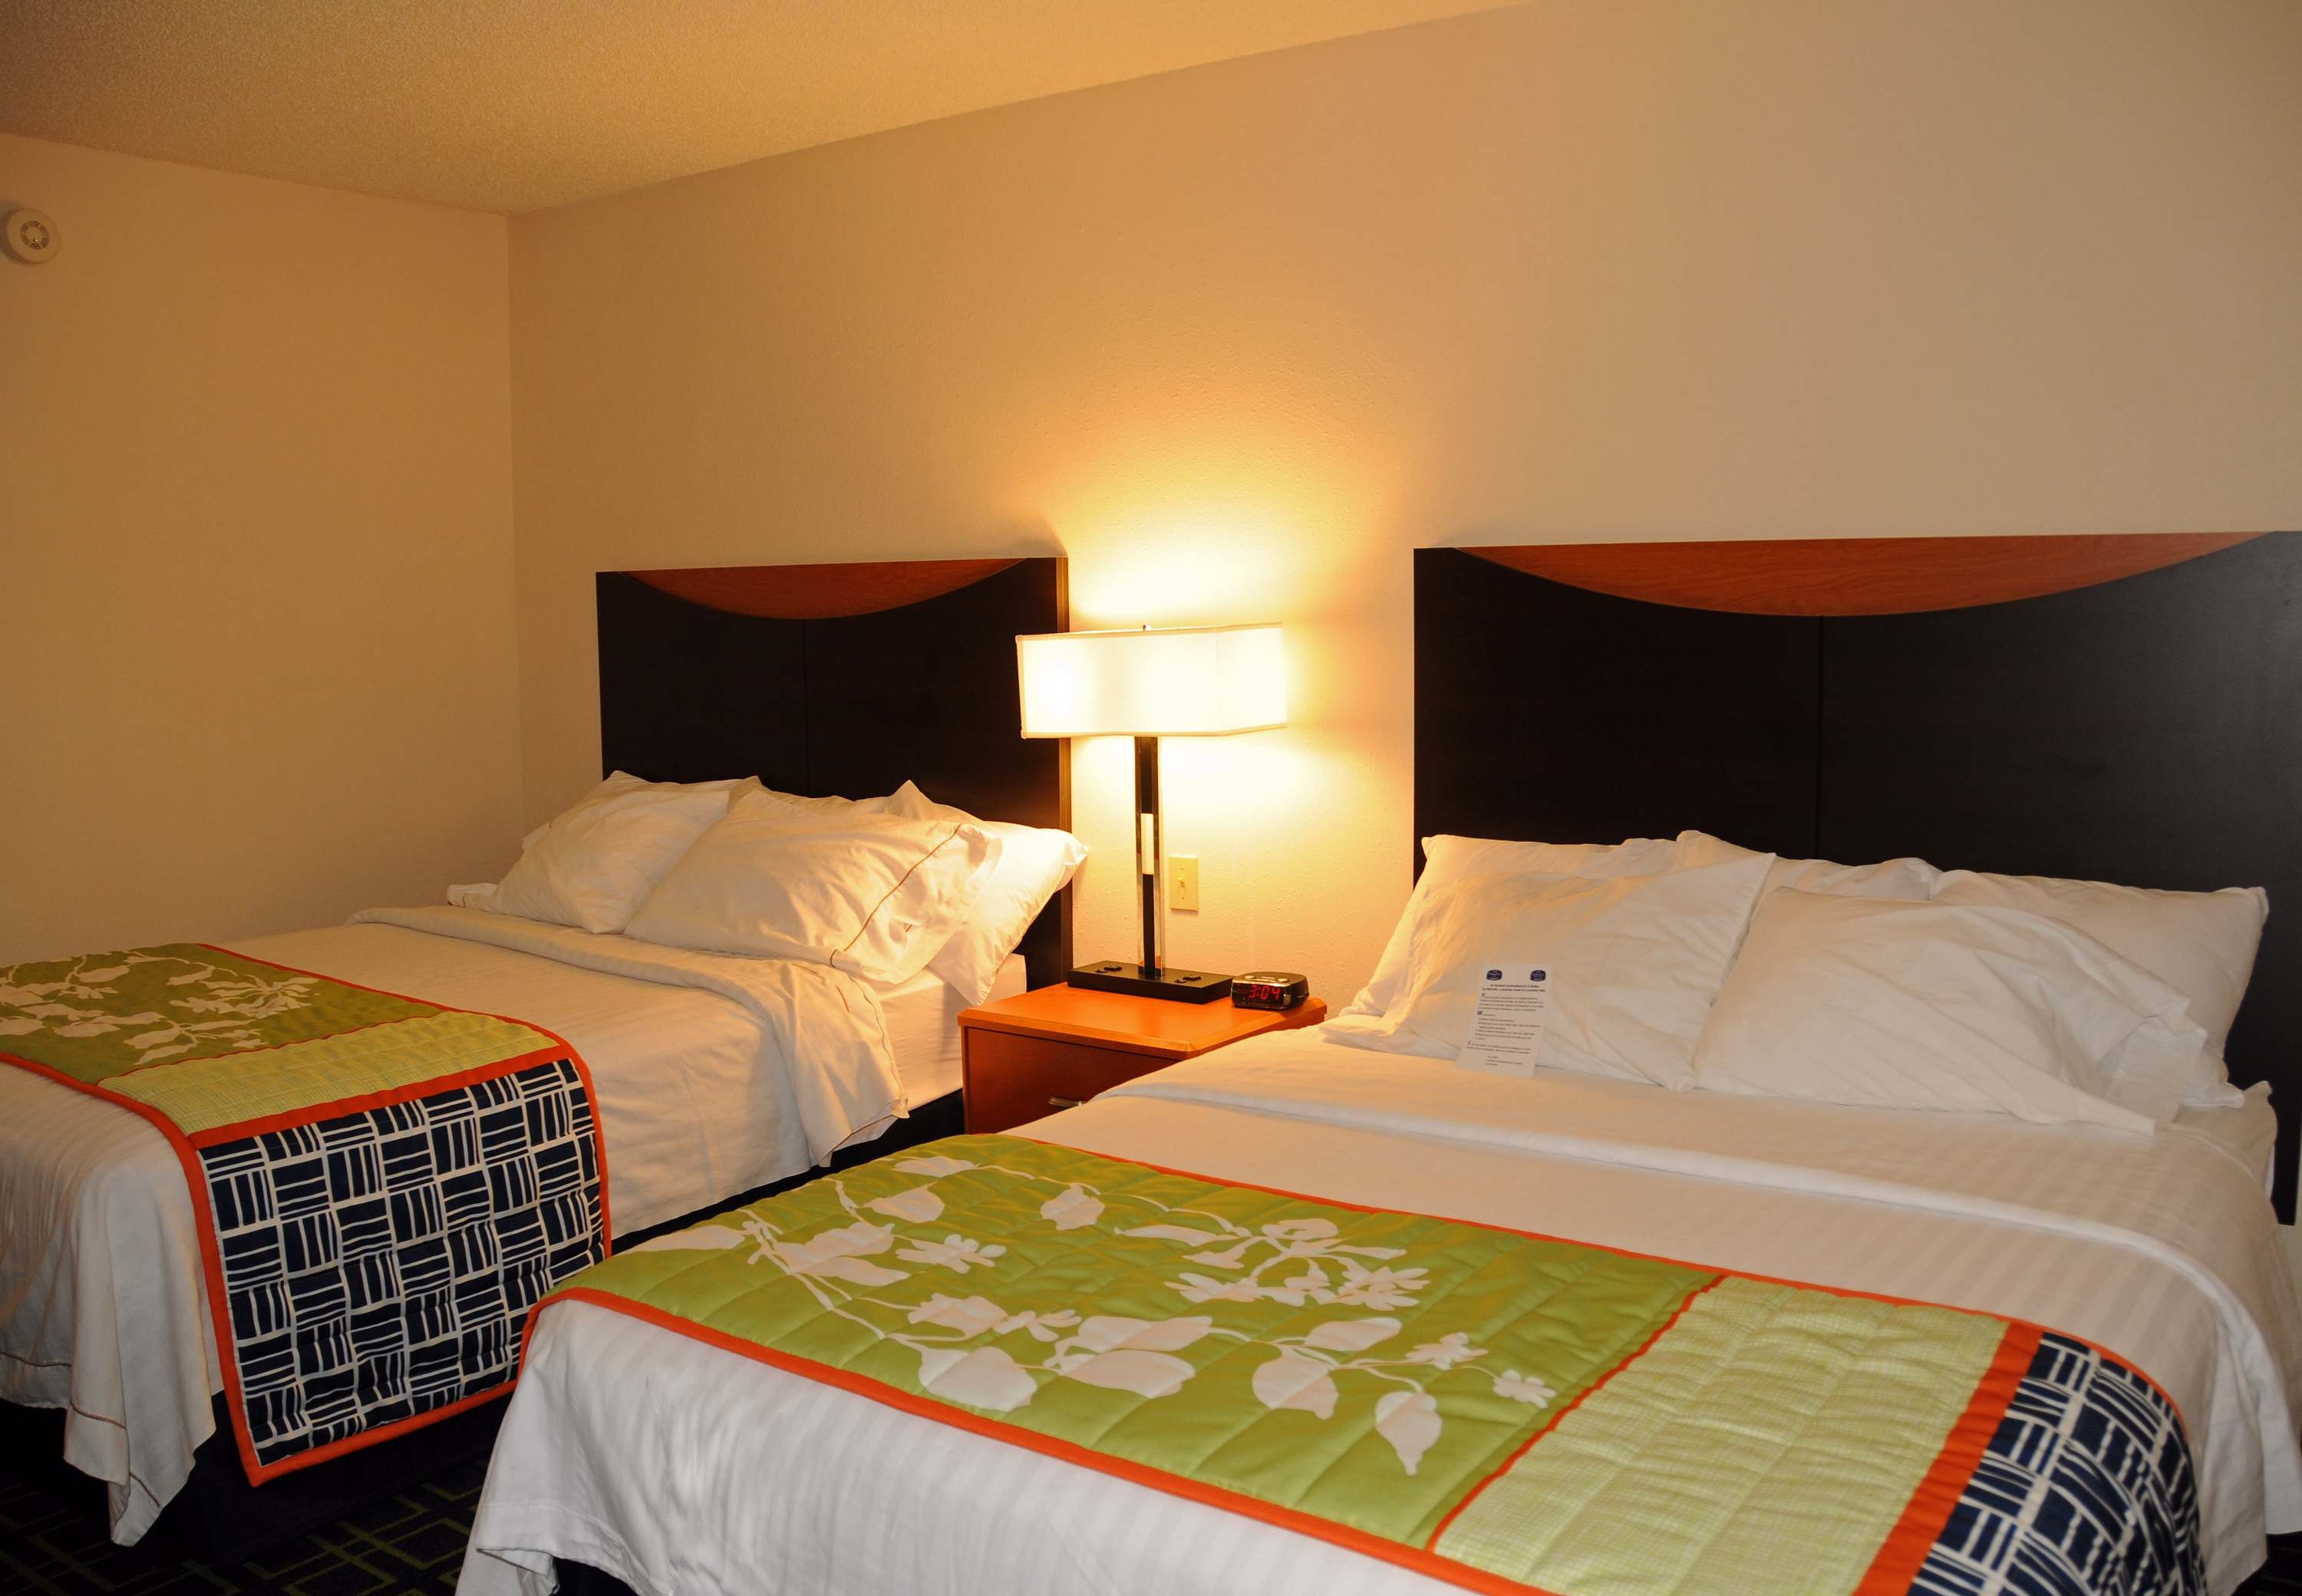 Fairfield Inn & Suites by Marriott Spearfish image 6